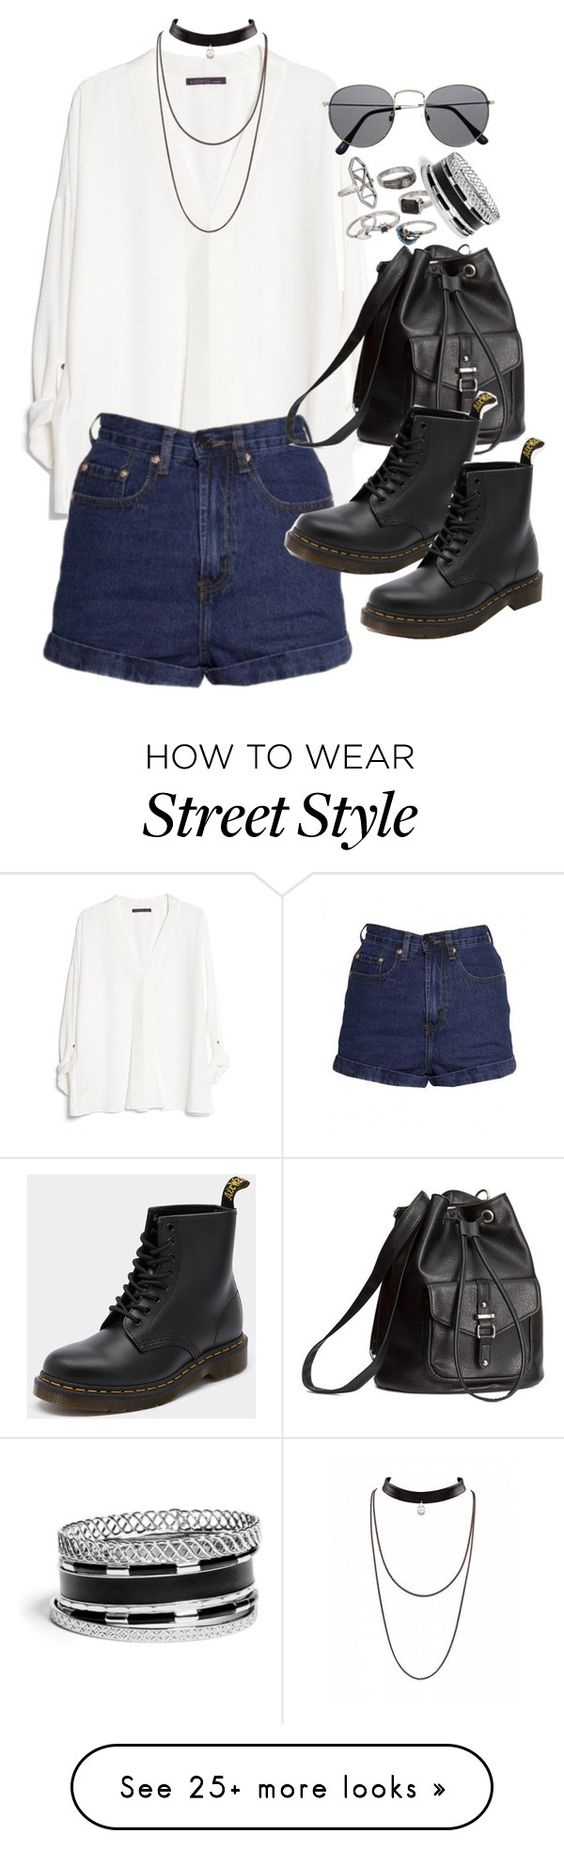 """""""Requested outfit"""" by ferned on Polyvore featuring MANGO, H&M, Dr. Martens, Mudd and GUESS"""